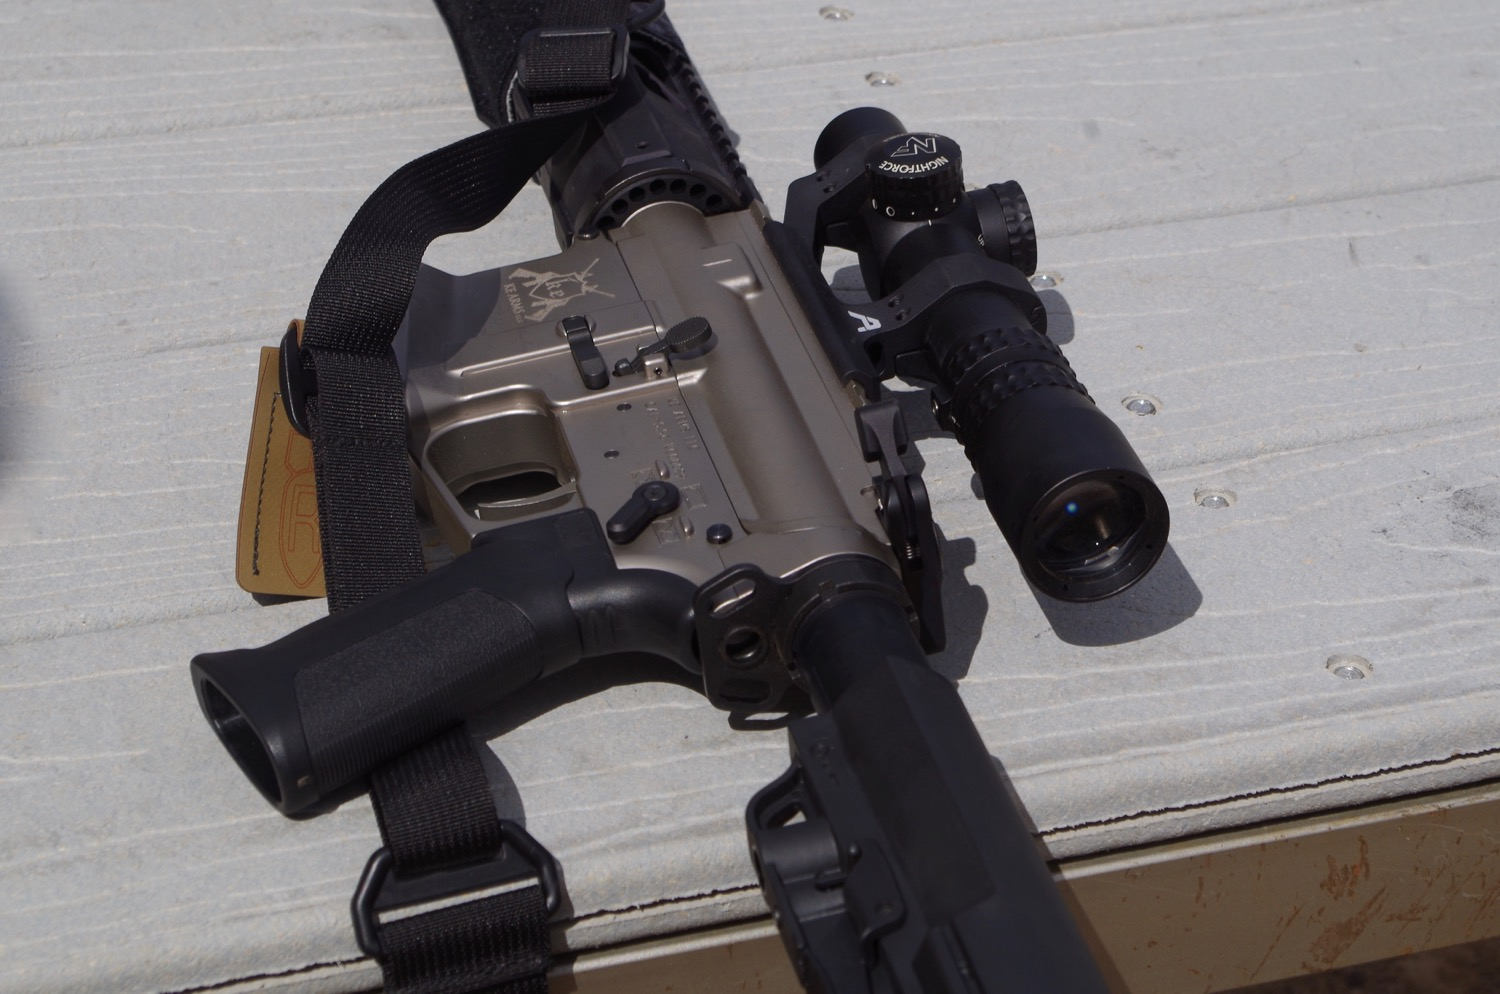 Rifle with optics is allowed in Tactical (Optics) Division, but not with pistol and shotgun also outfitted.